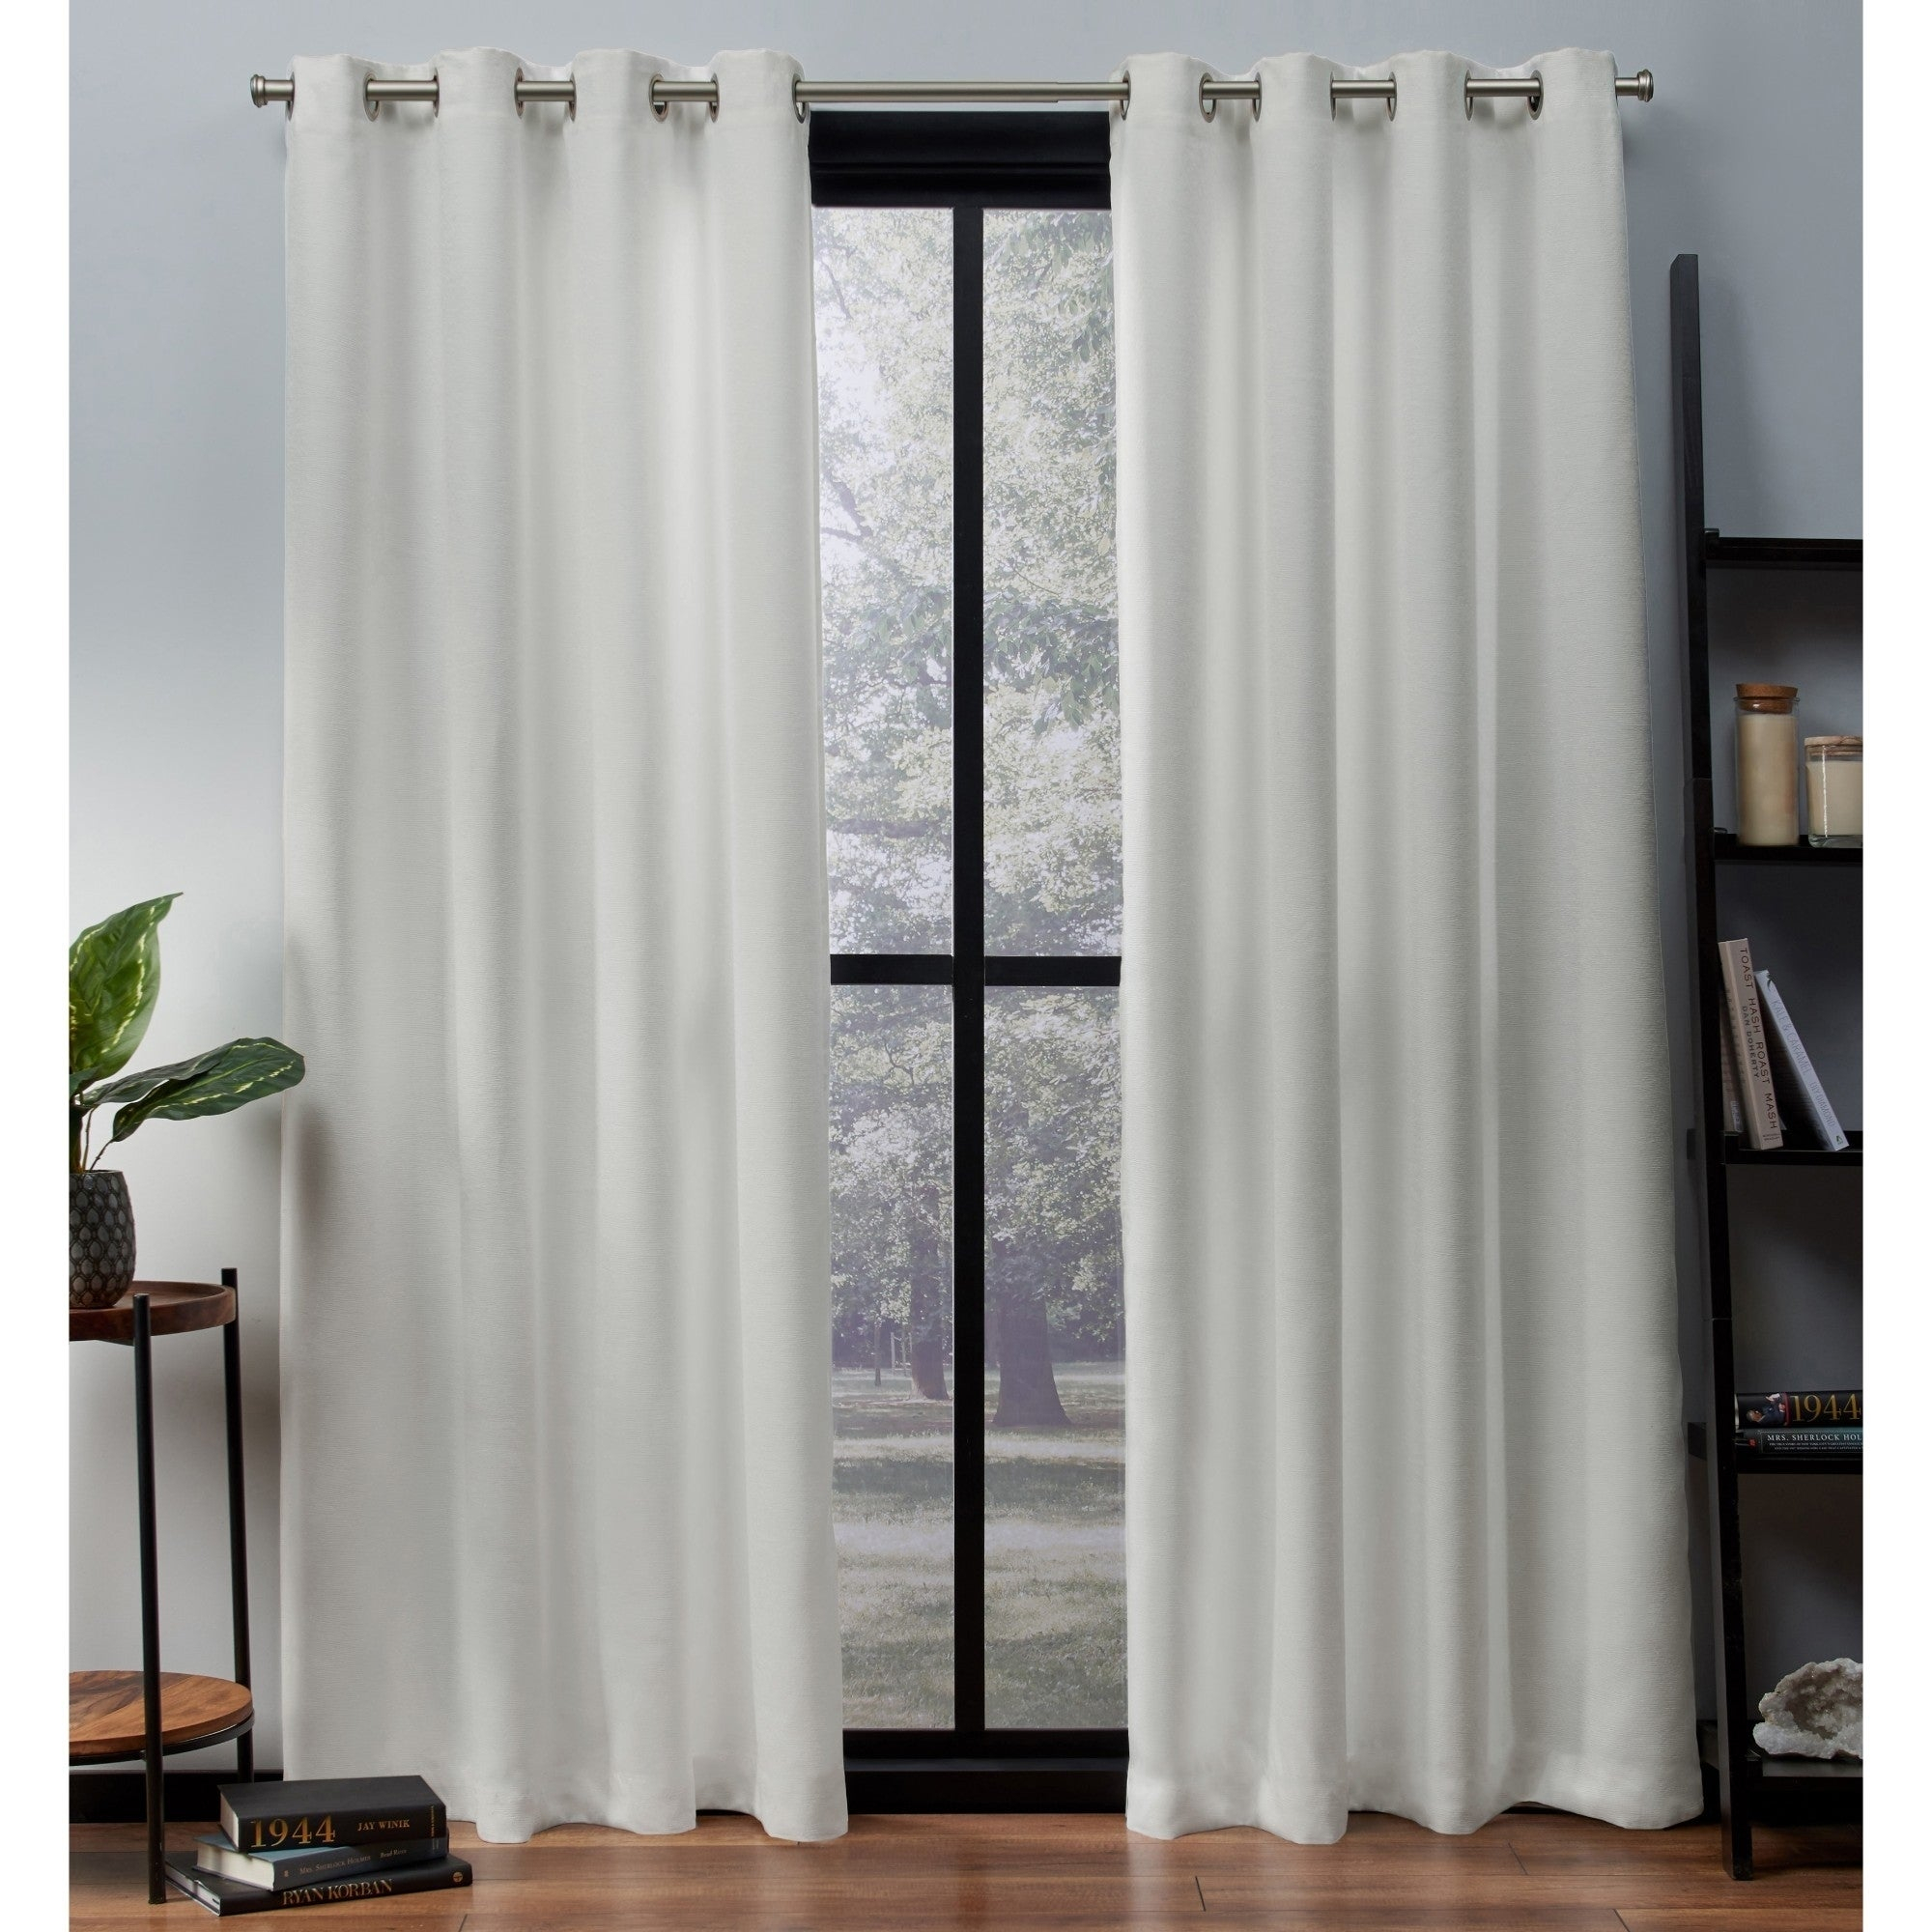 Details About Ati Home Oxford Sateen Woven Blackout Grommet Top Curtain In Easton Thermal Woven Blackout Grommet Top Curtain Panel Pairs (View 12 of 20)